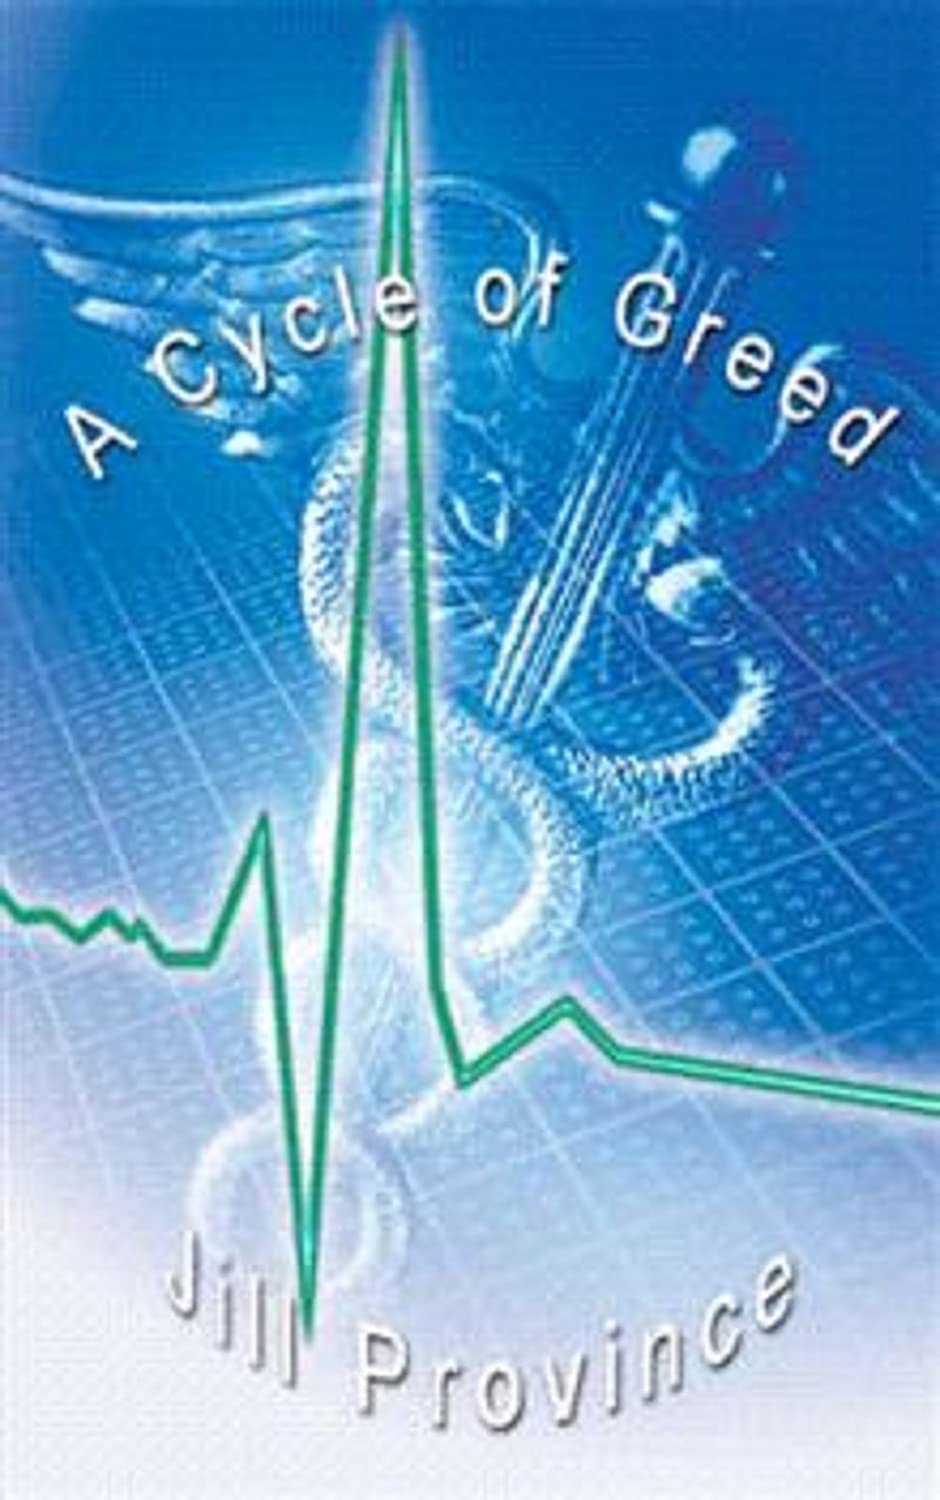 A-Cycle-of-Greed-cover